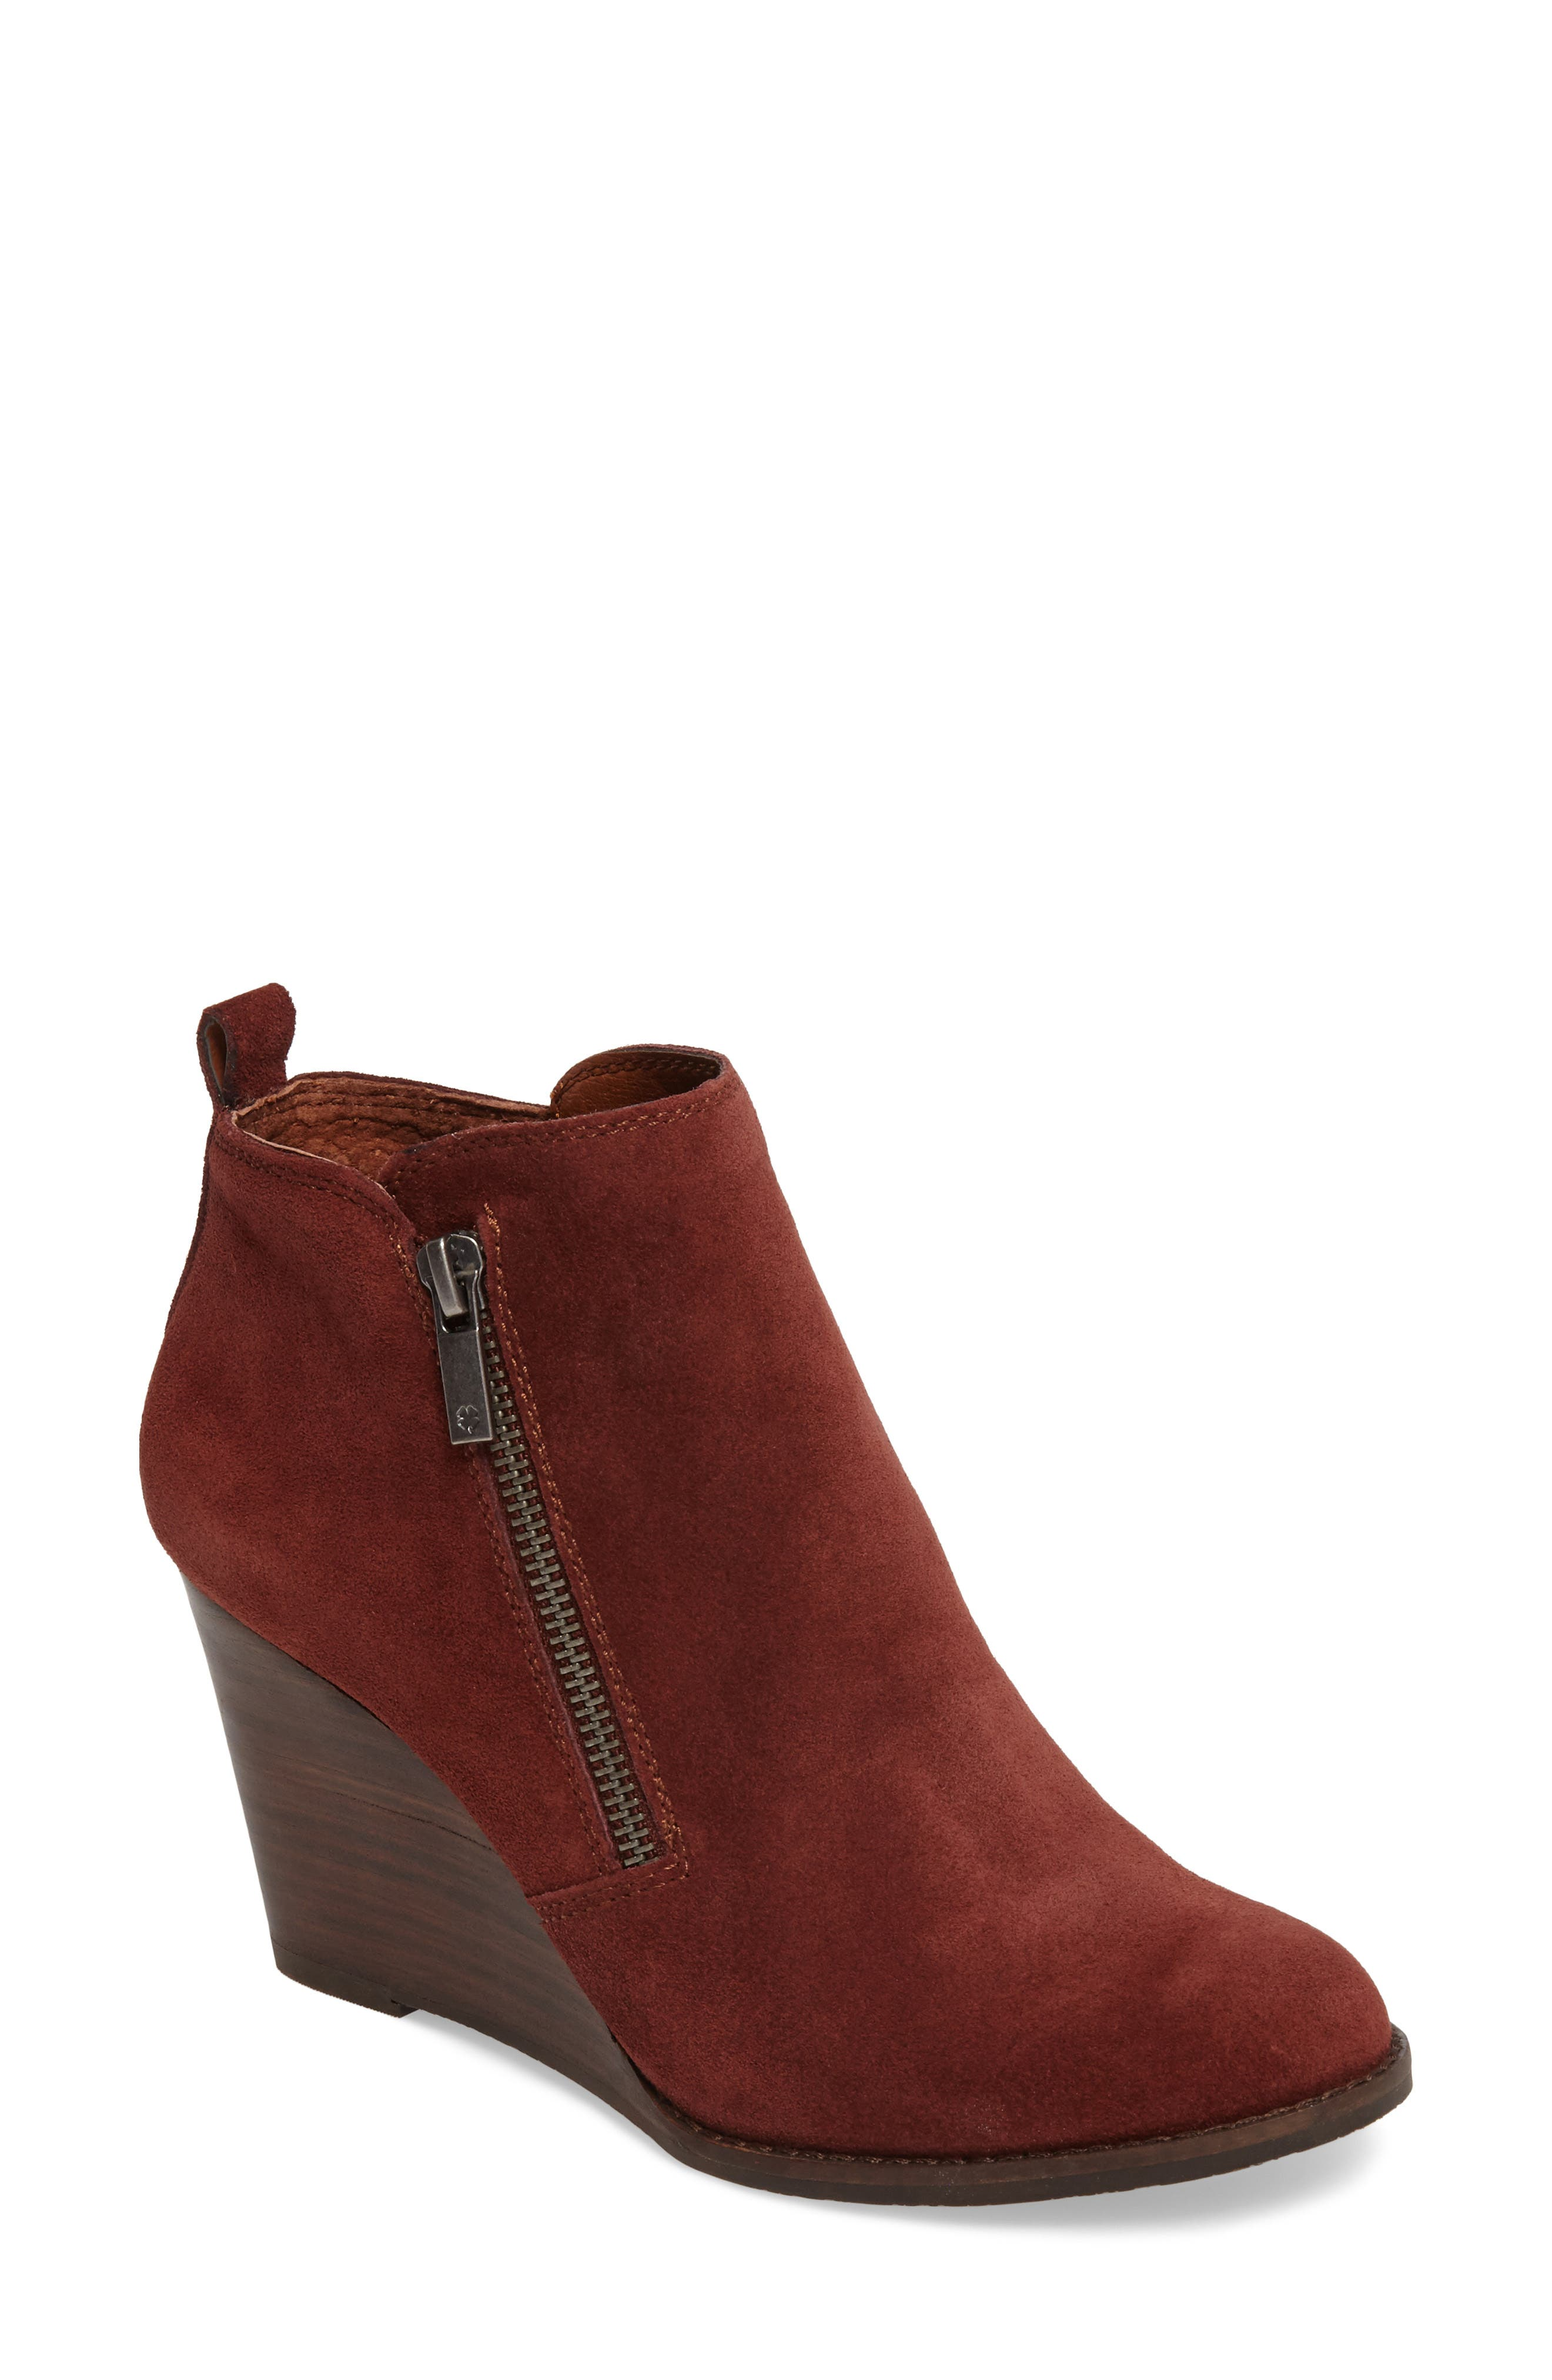 Yesterr Wedge Bootie,                             Main thumbnail 3, color,